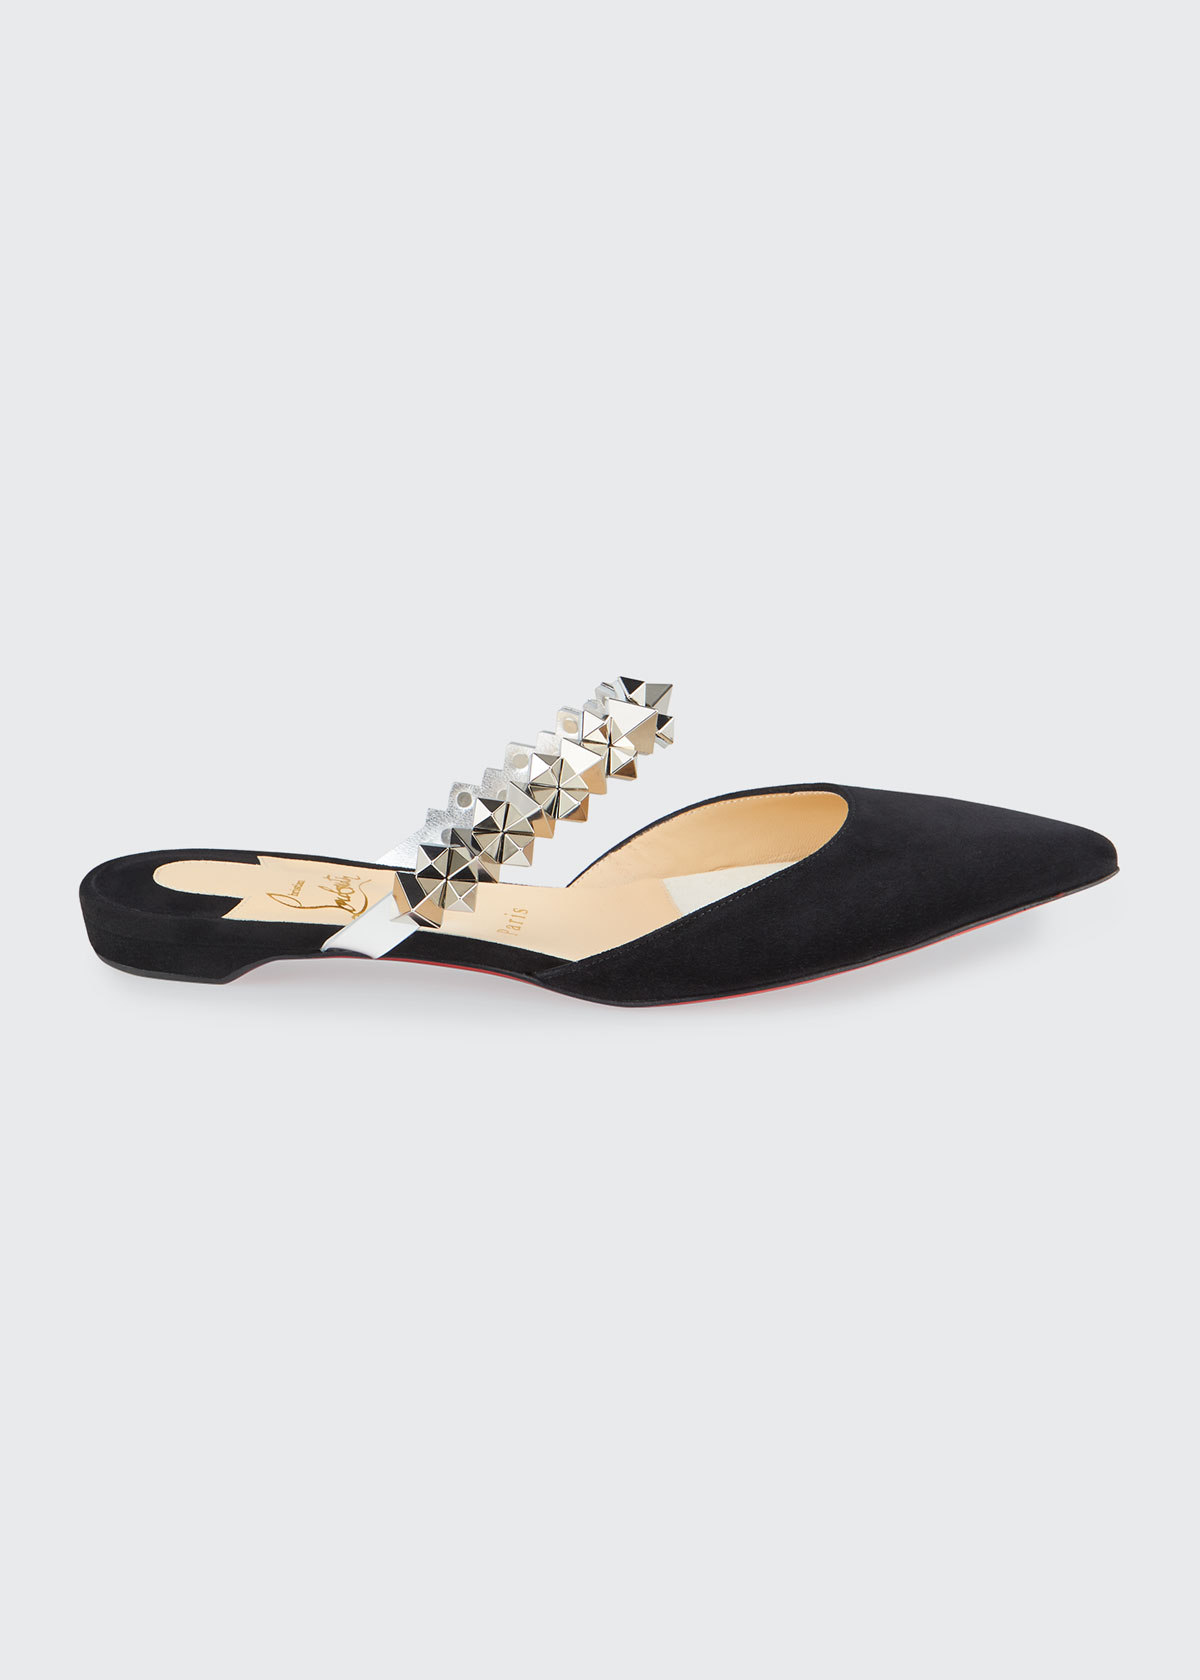 Christian Louboutin PLANET CHOC SUEDE SPIKE-STRAP RED SOLE MULES